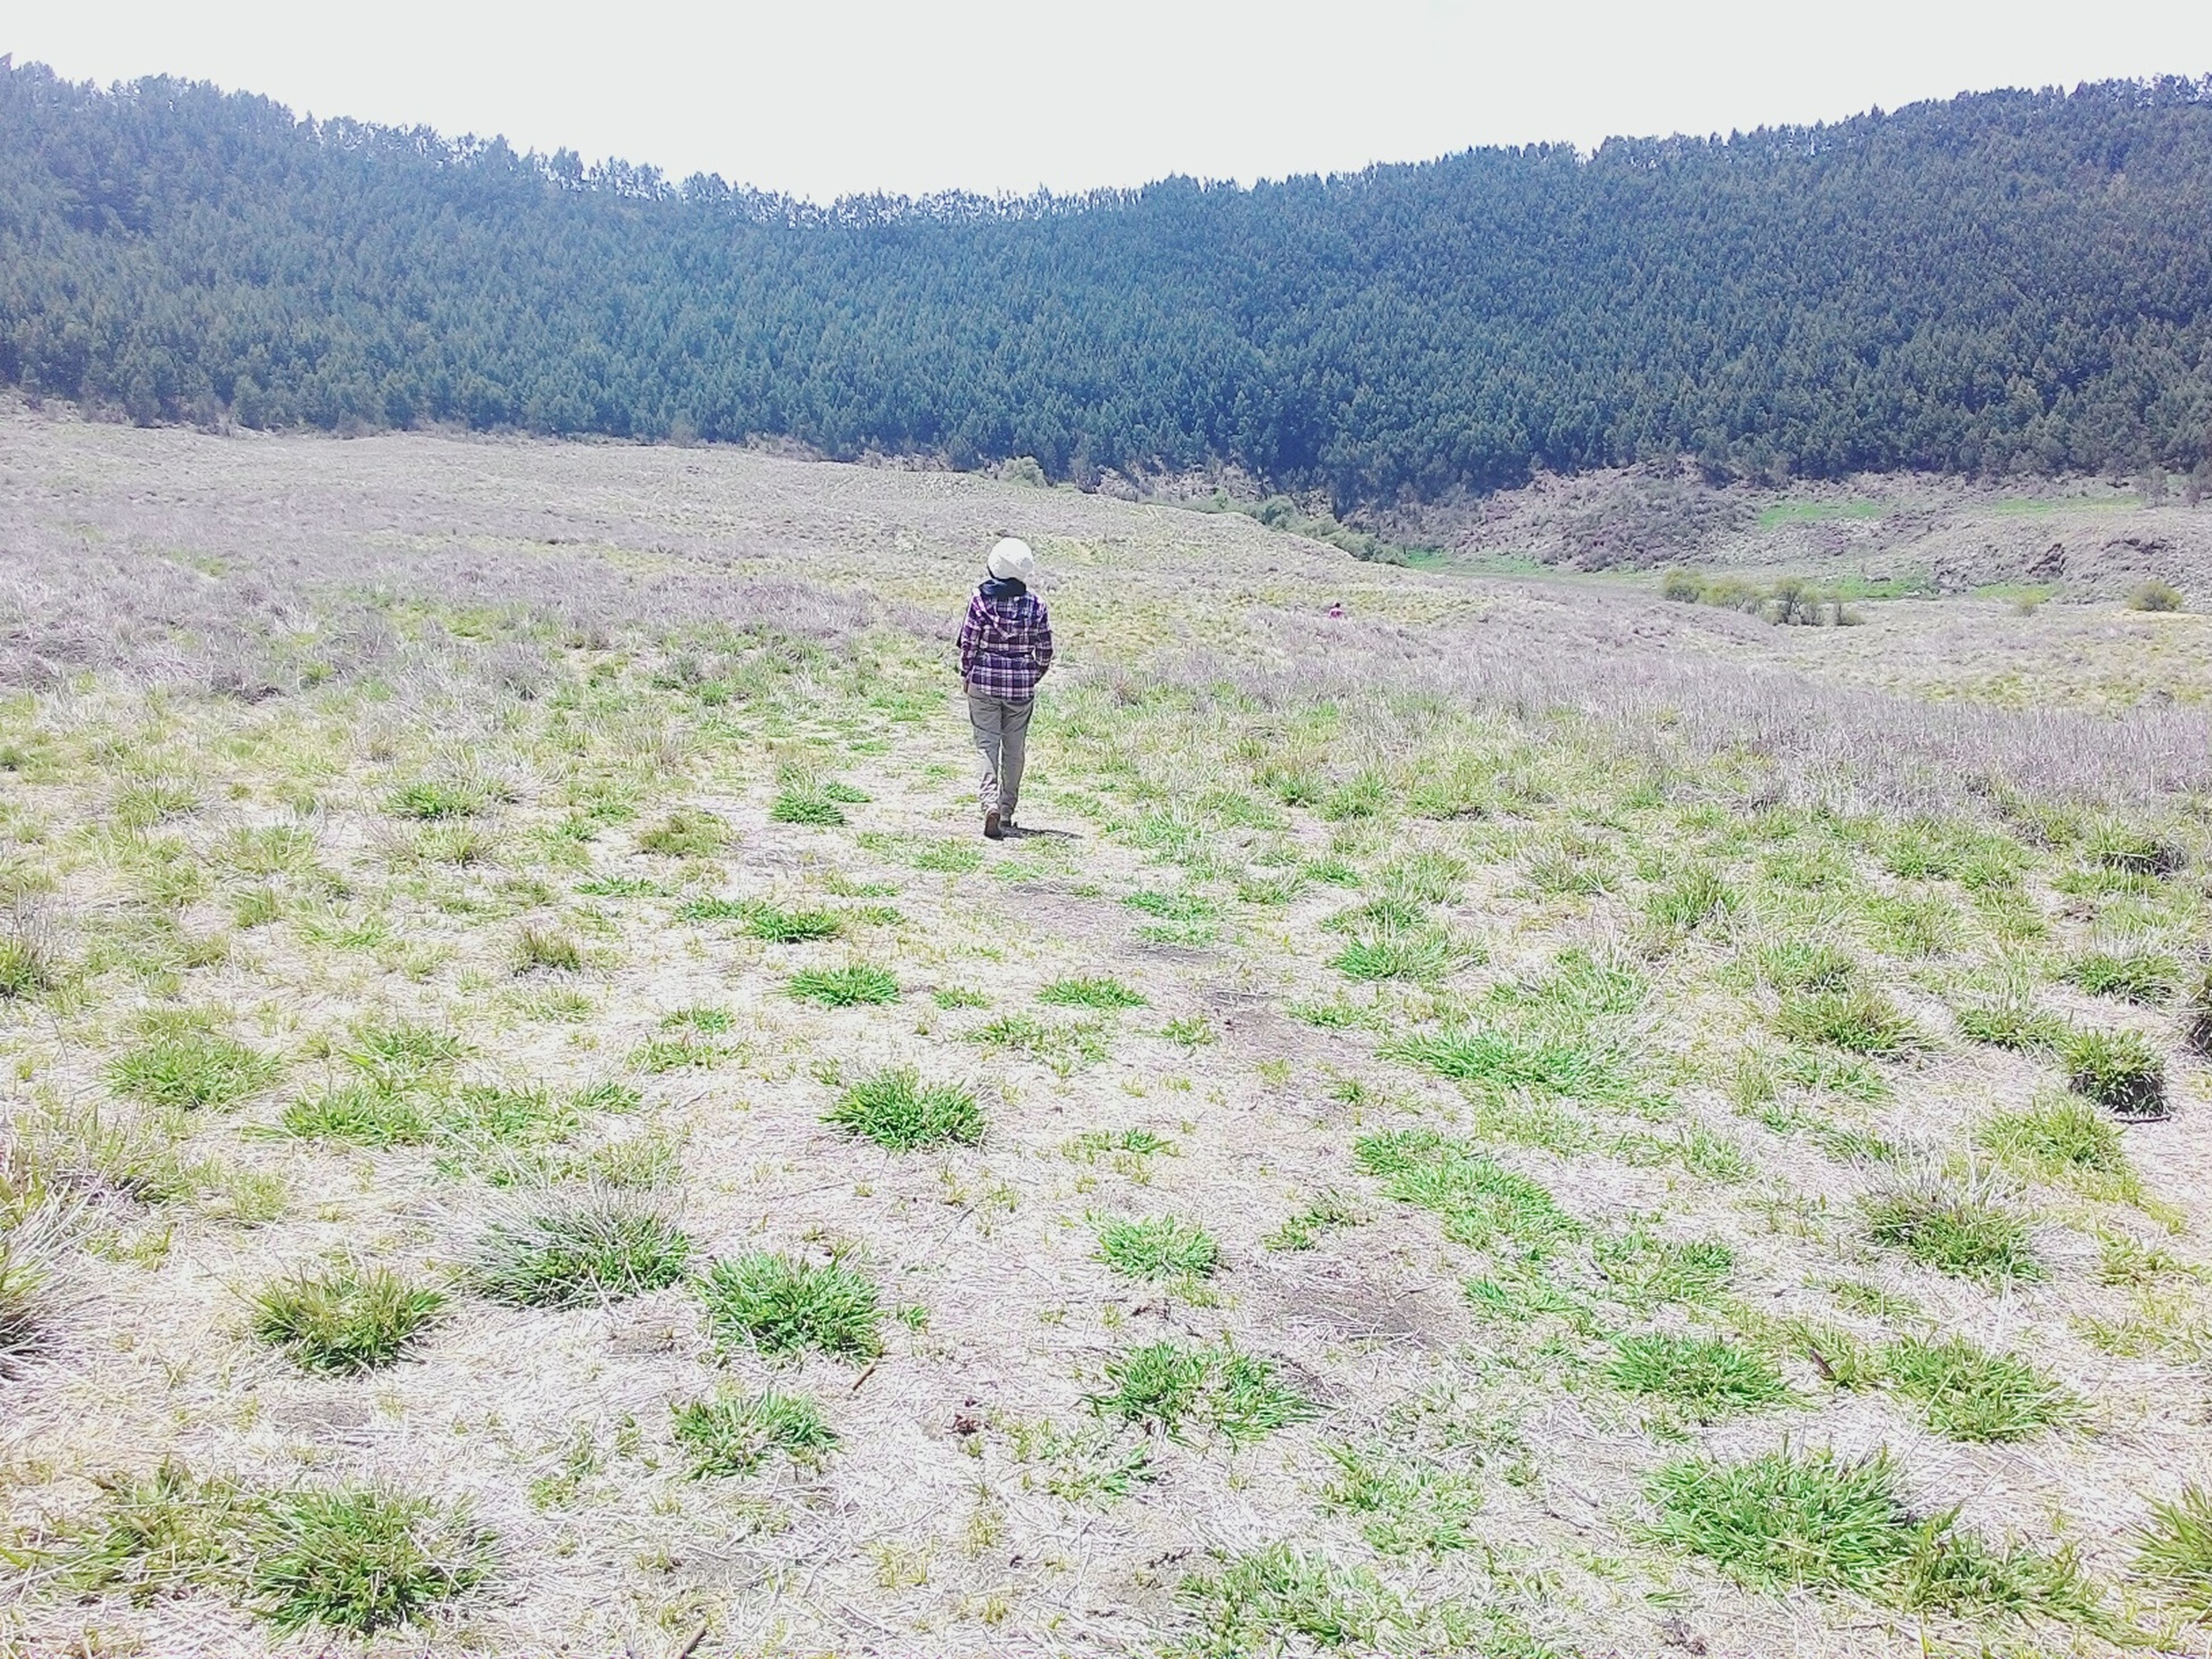 mountain, landscape, lifestyles, full length, leisure activity, rear view, tranquility, tranquil scene, nature, standing, beauty in nature, men, field, scenics, walking, grass, plant, hiking